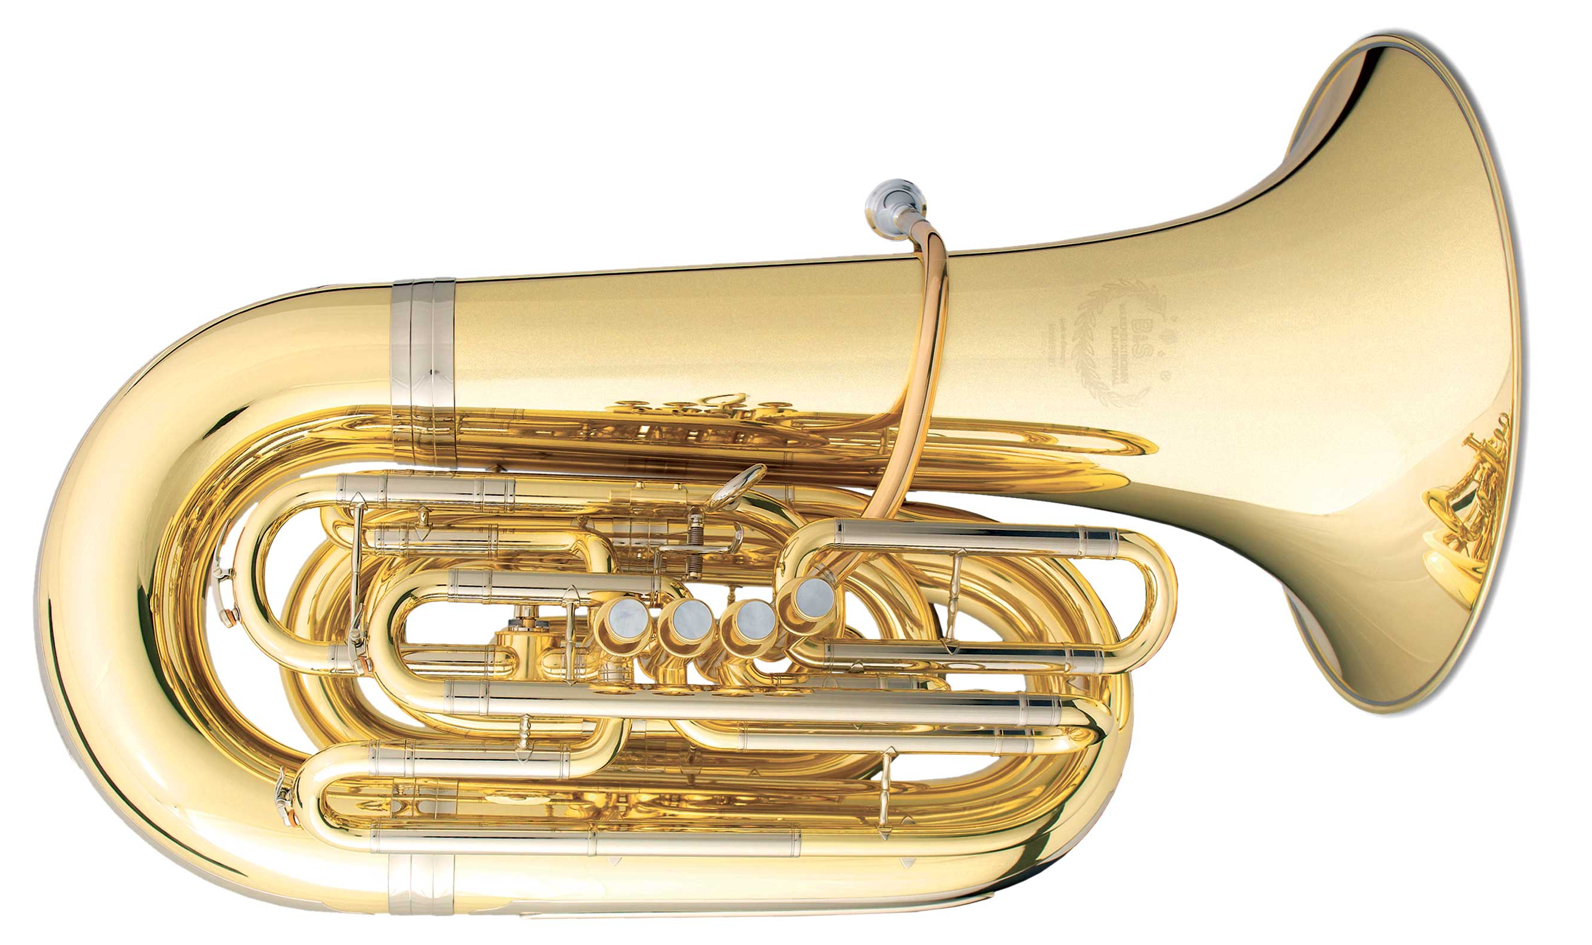 The Bu0026S GR41 is a very popular 4/4 CC tuba and is versatile being numble  for the smaller ensemble, but able to keep up with the larger enemble  demands. - PNG Tuba